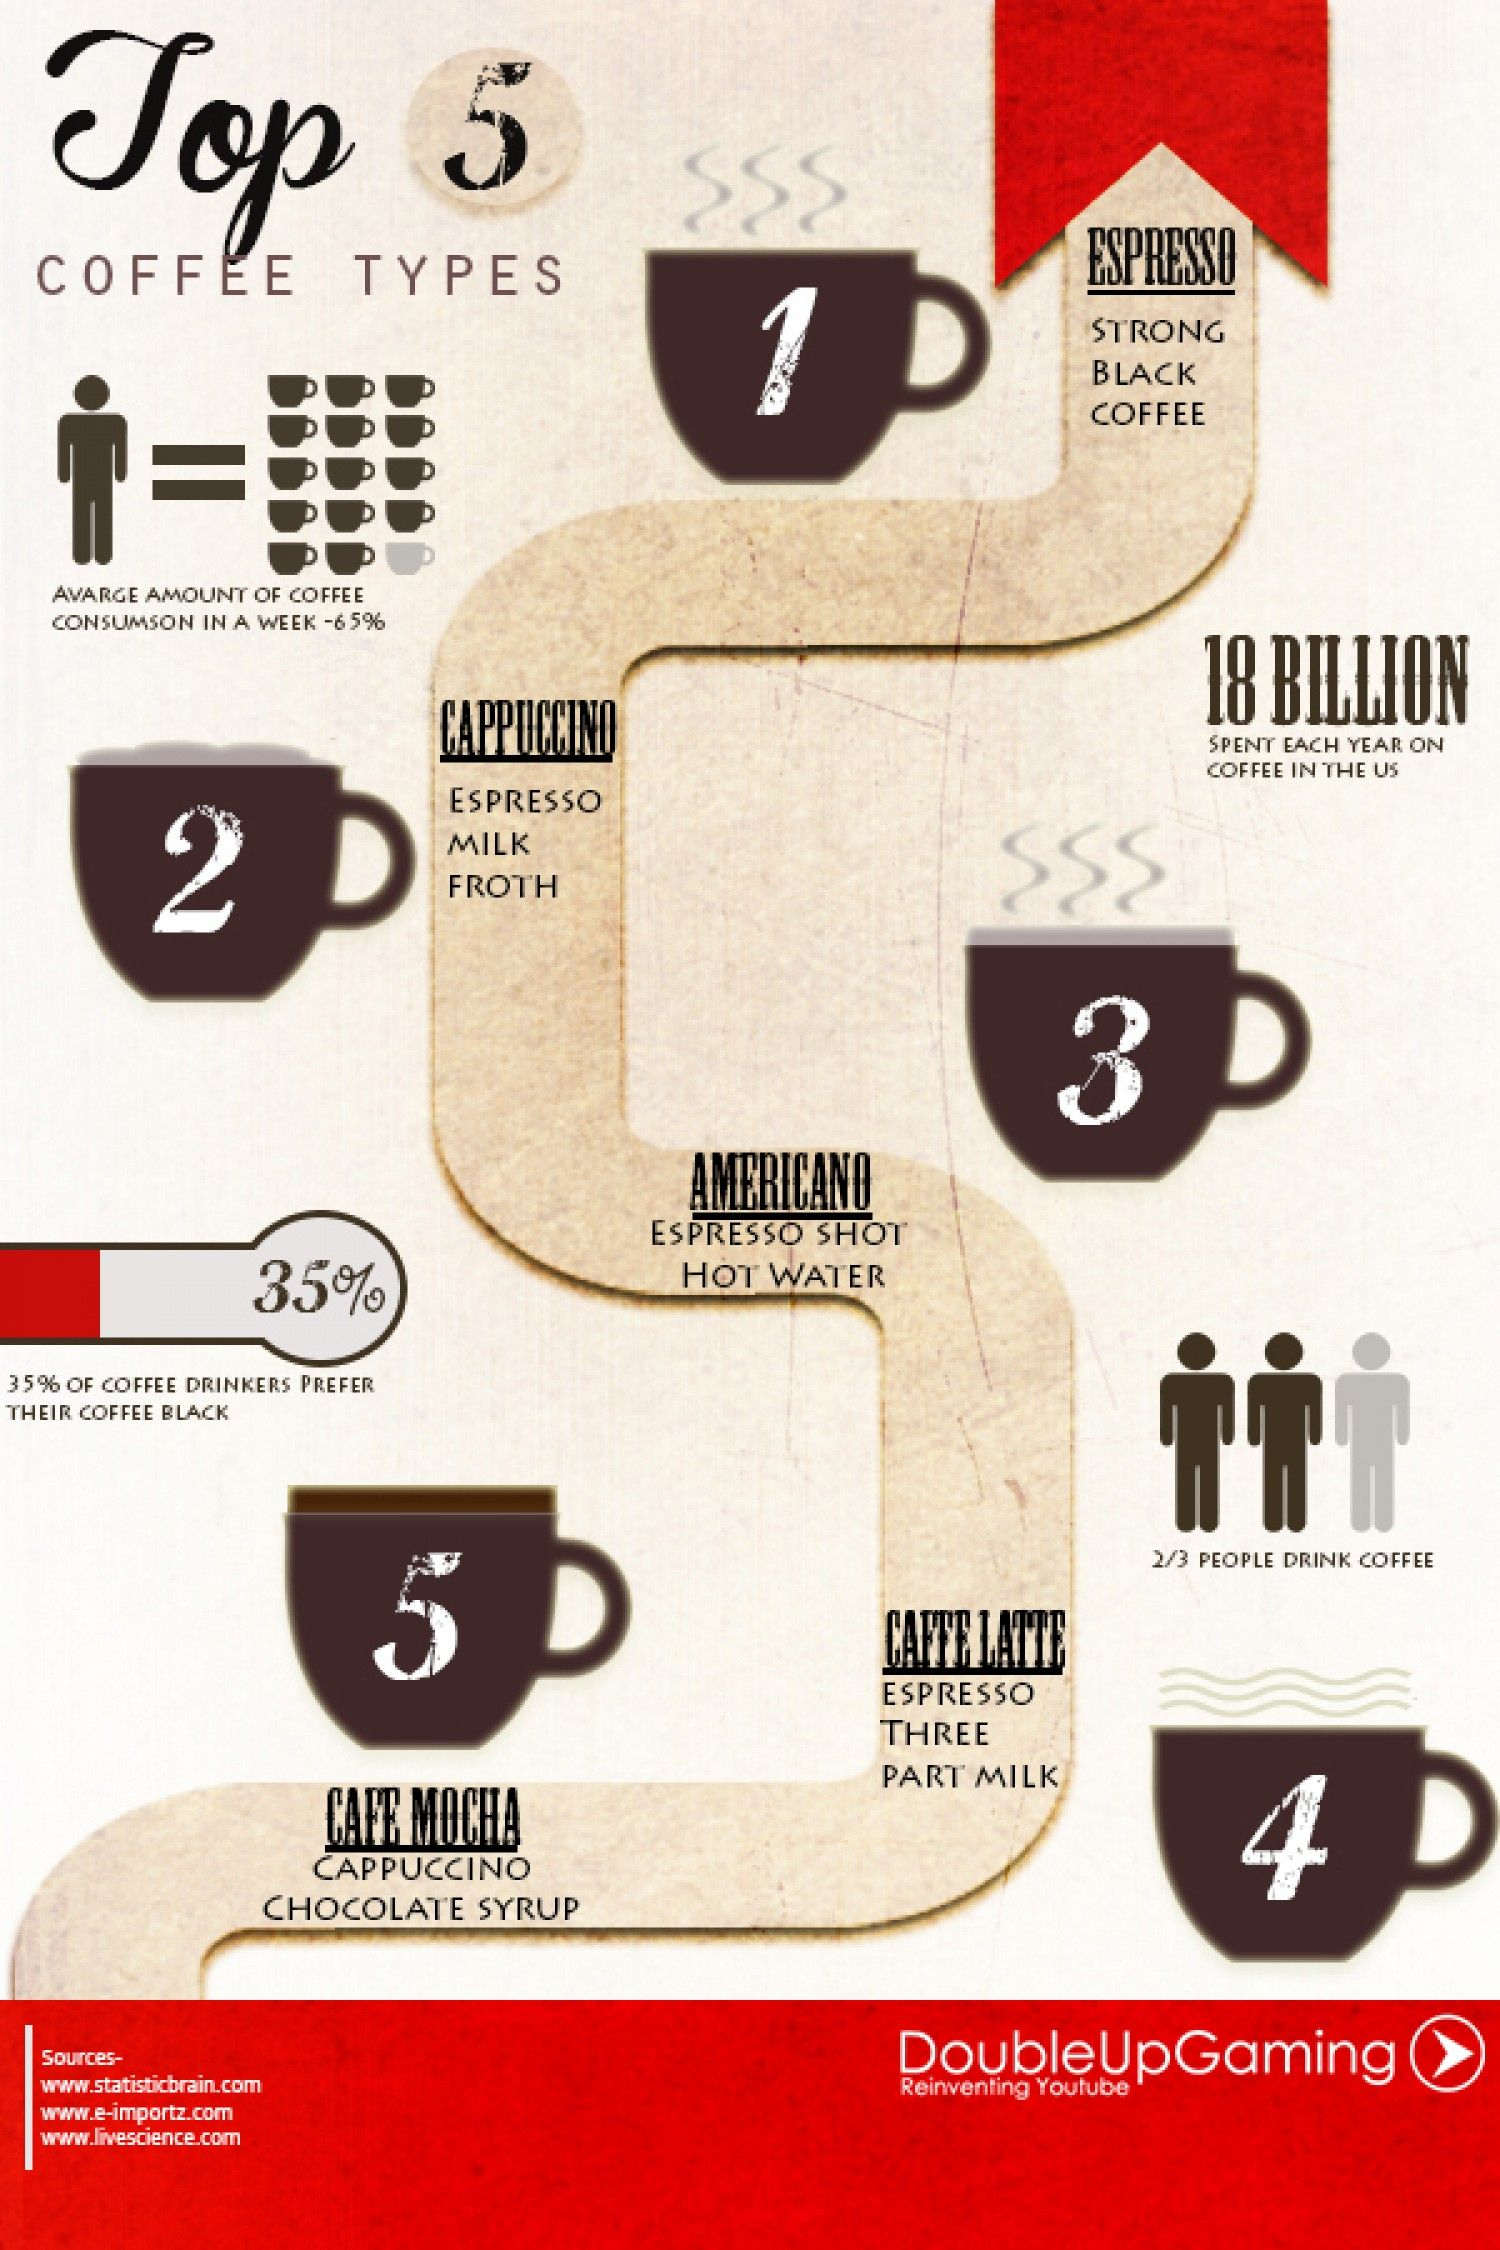 Top 5 coffee types. An info graphic with statistical